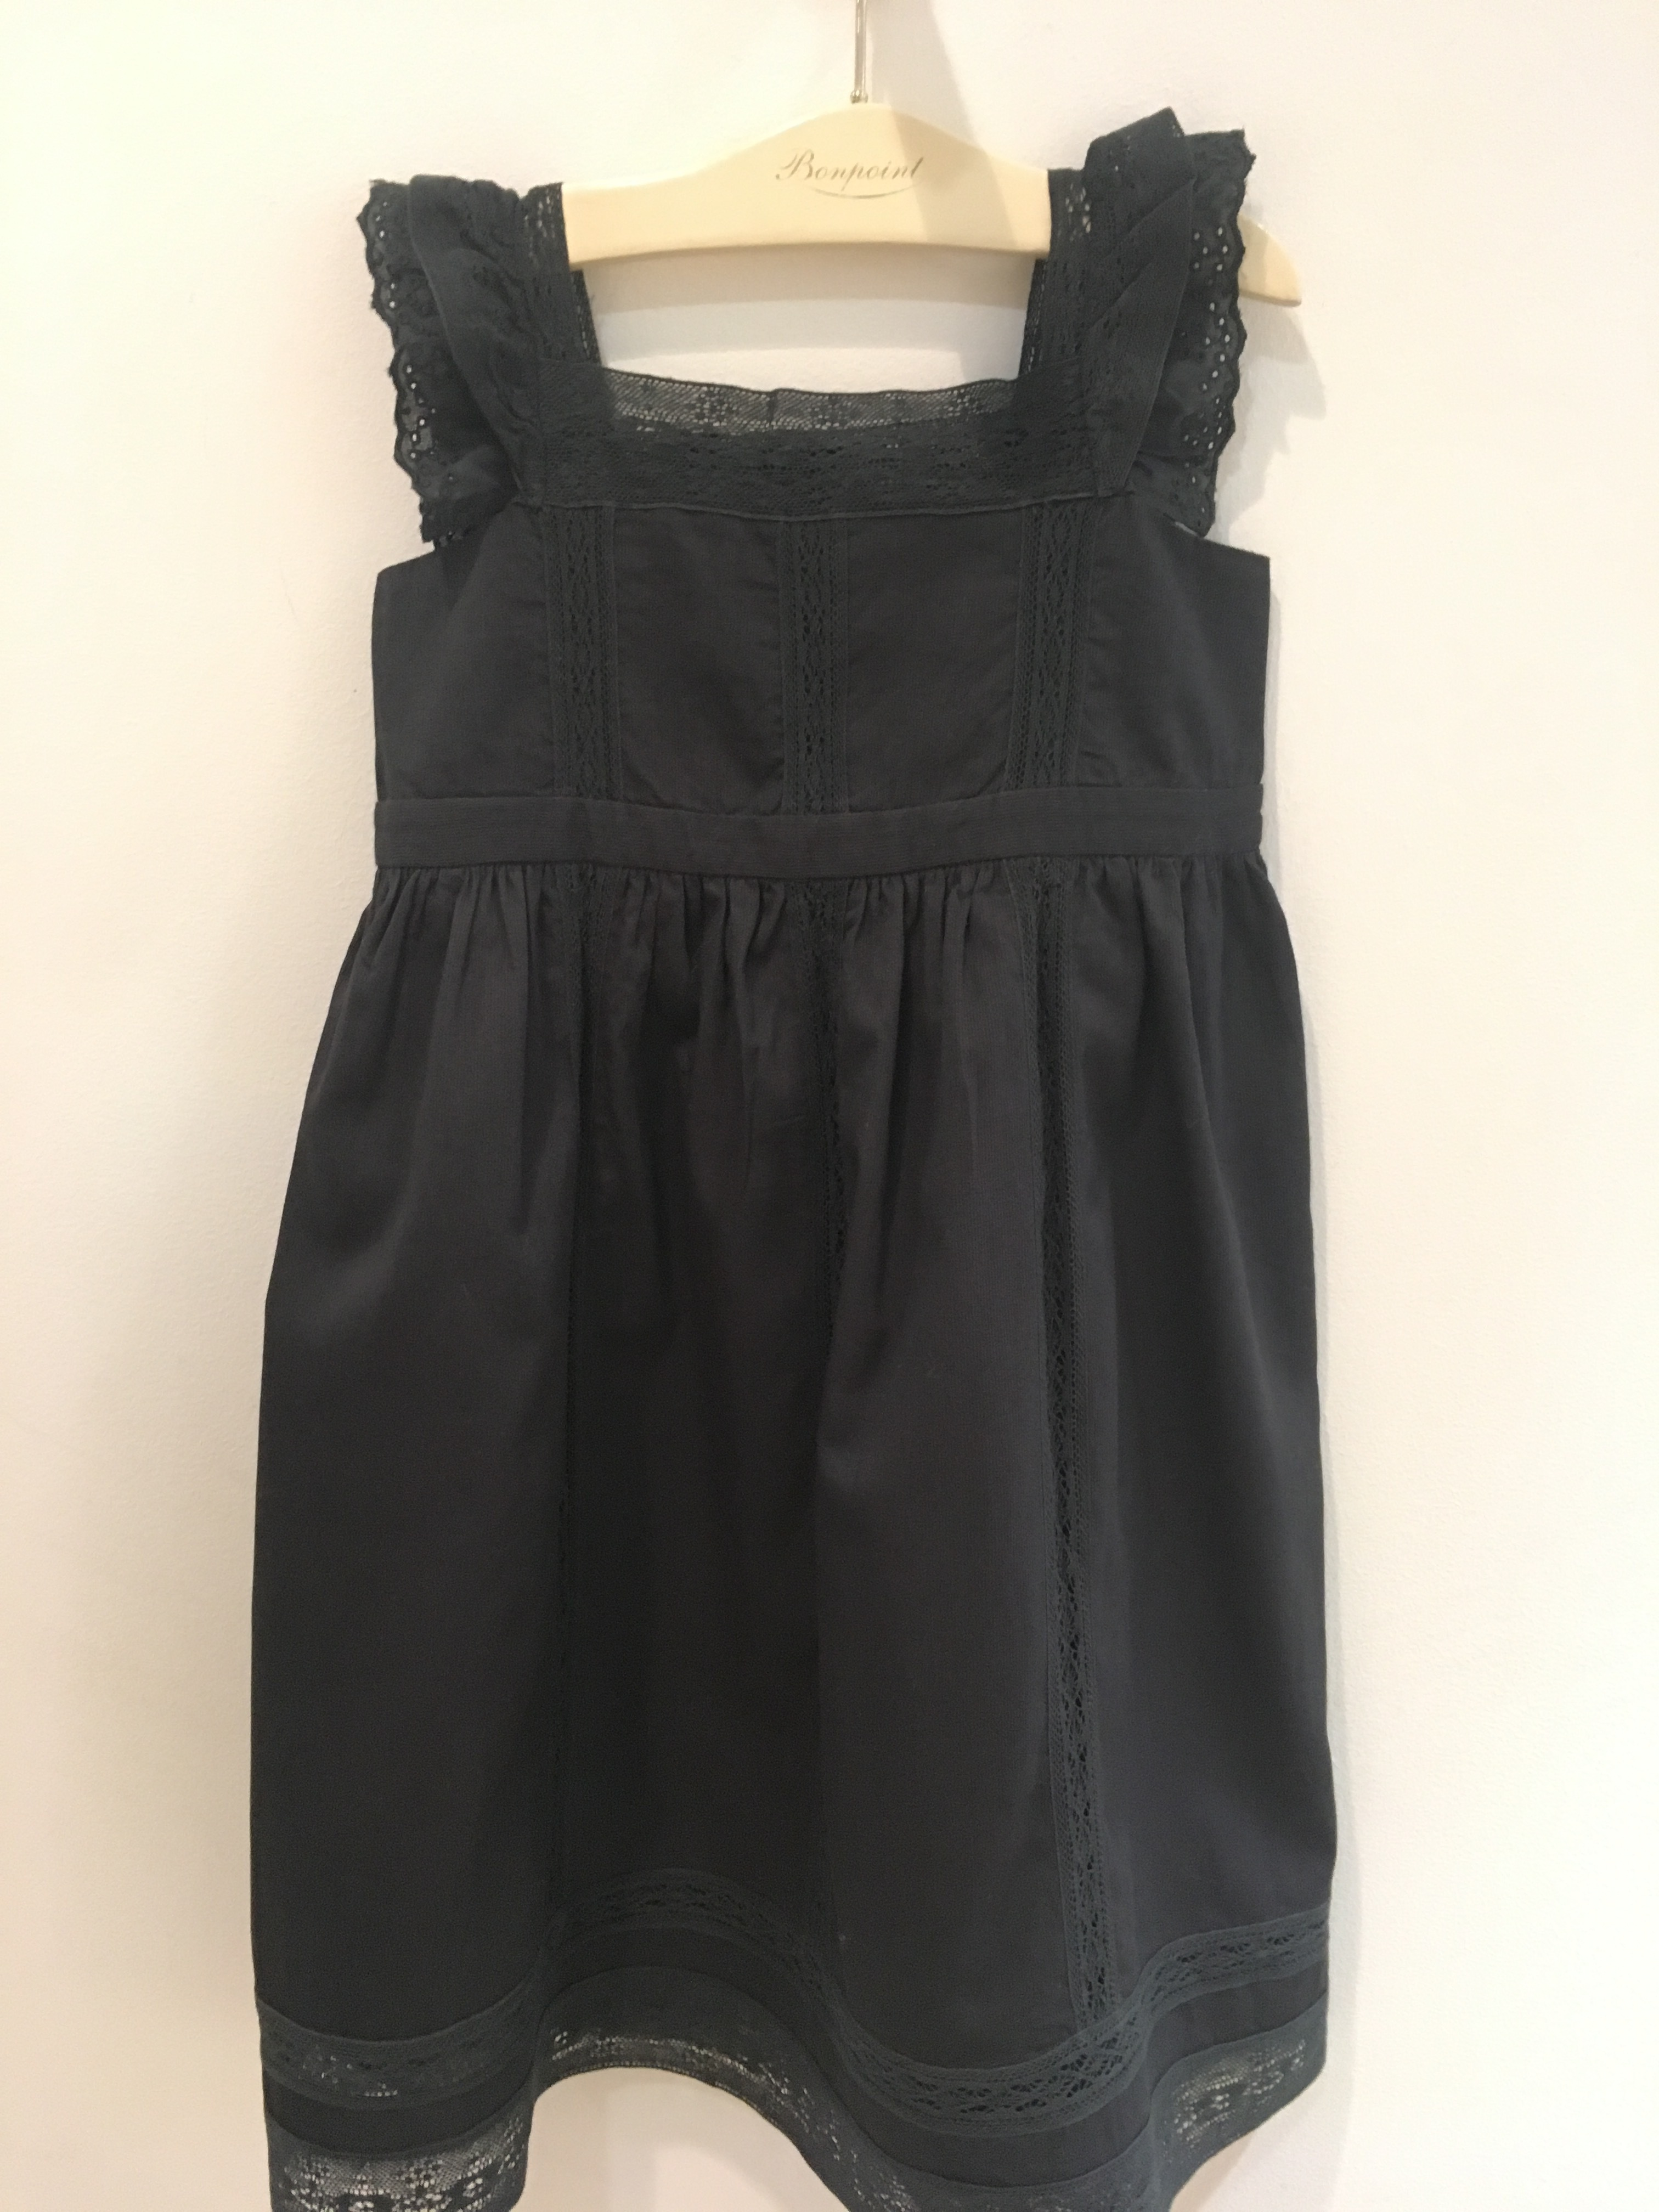 SS18 BONPOINT☆FILLE ワンピースGIGI BLK3.4A